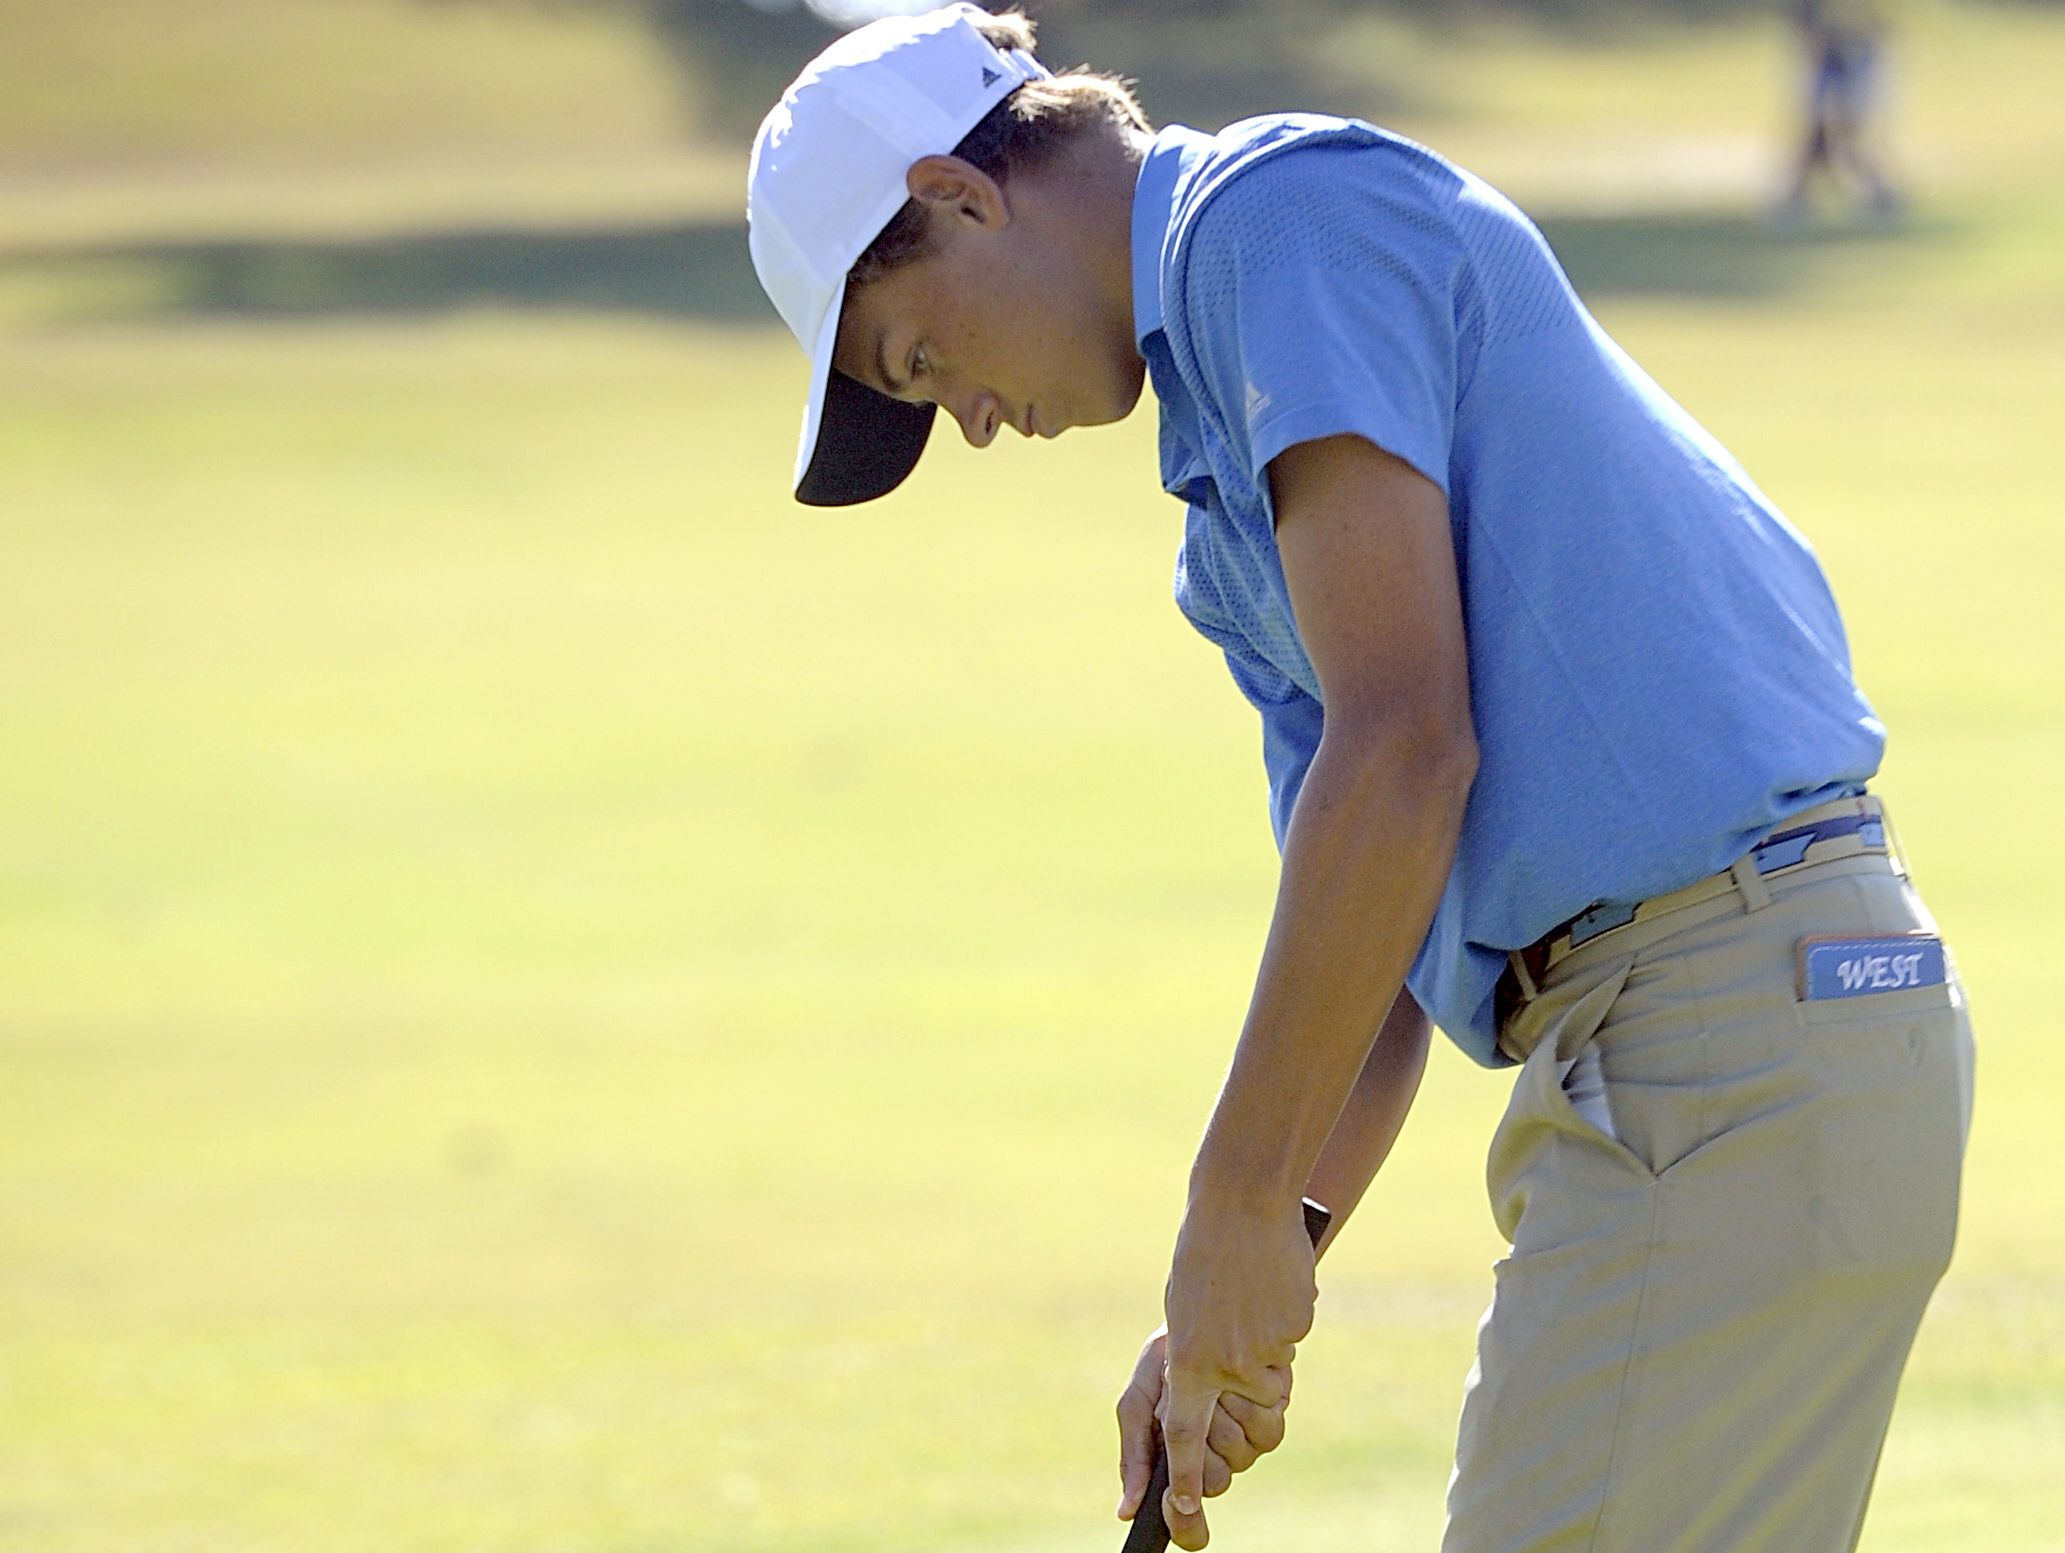 Brentwood sophomore Trenton Johnson taps in for a birdie on the final hole of his Wednesday round of 71.